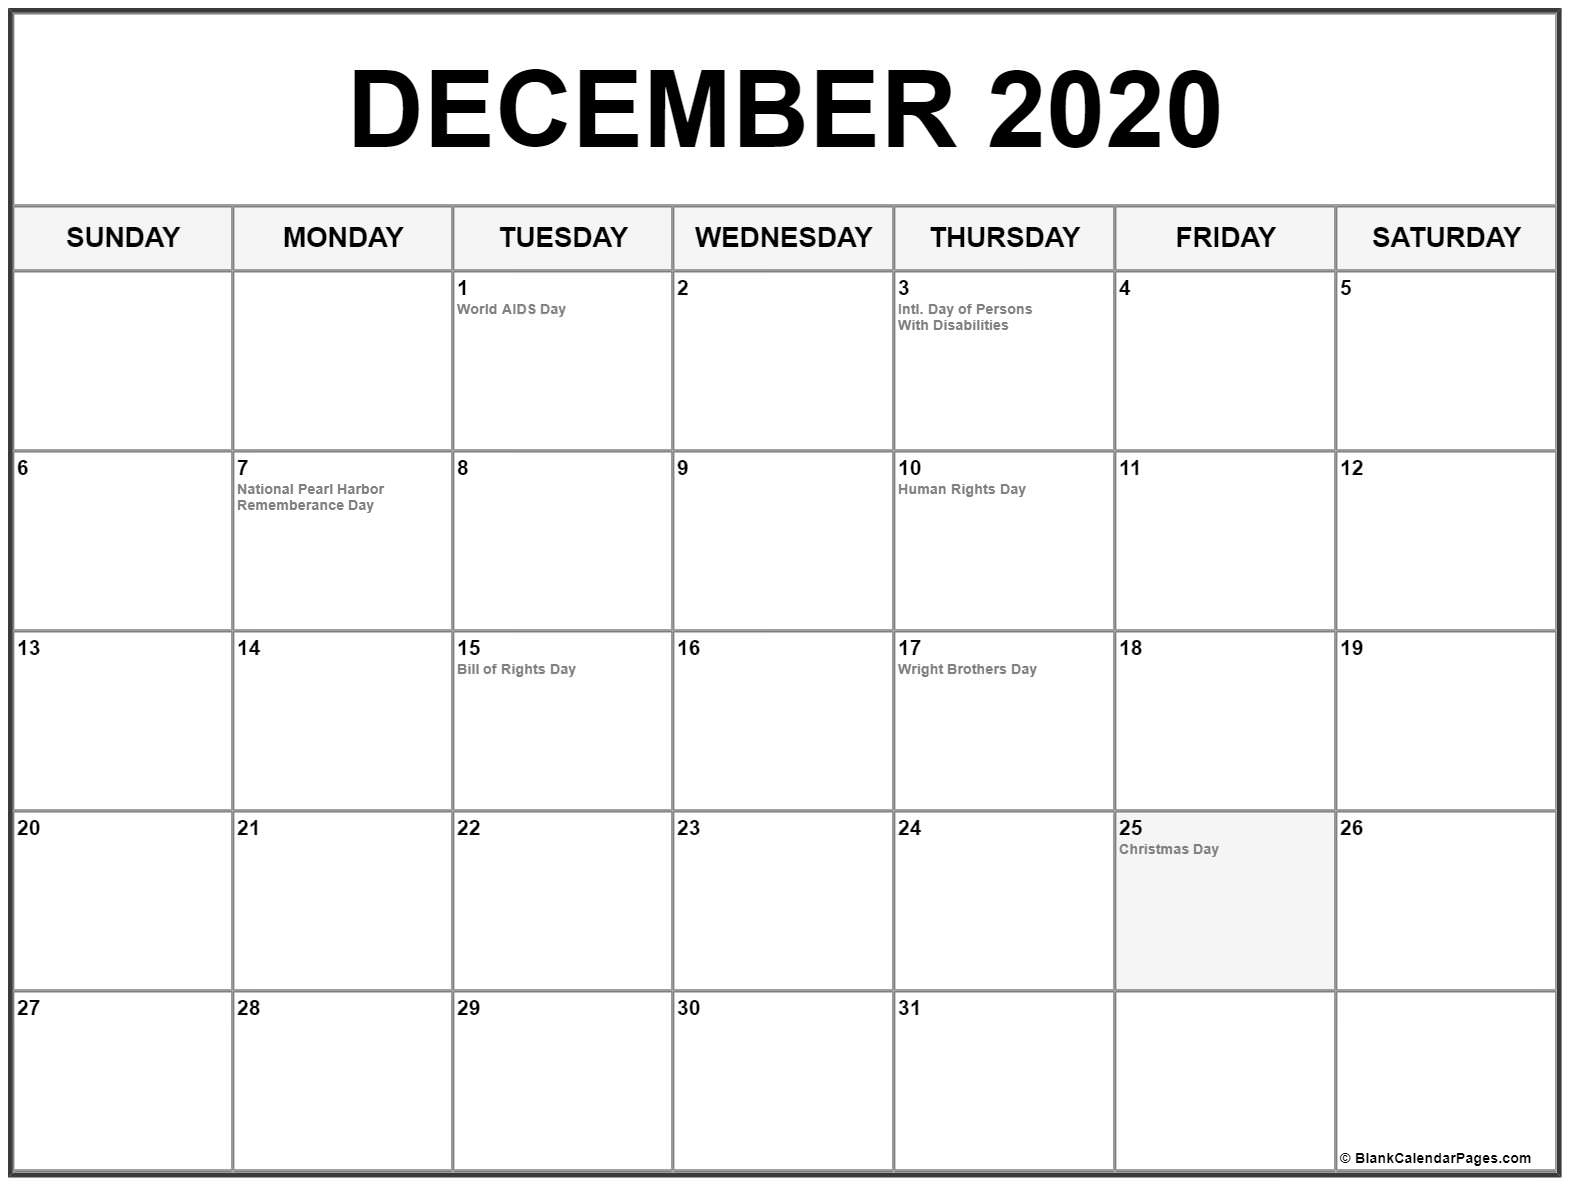 December 2020 Calendar With Holidays | Printable Calendar Perky 2020 Calendar And Holidays